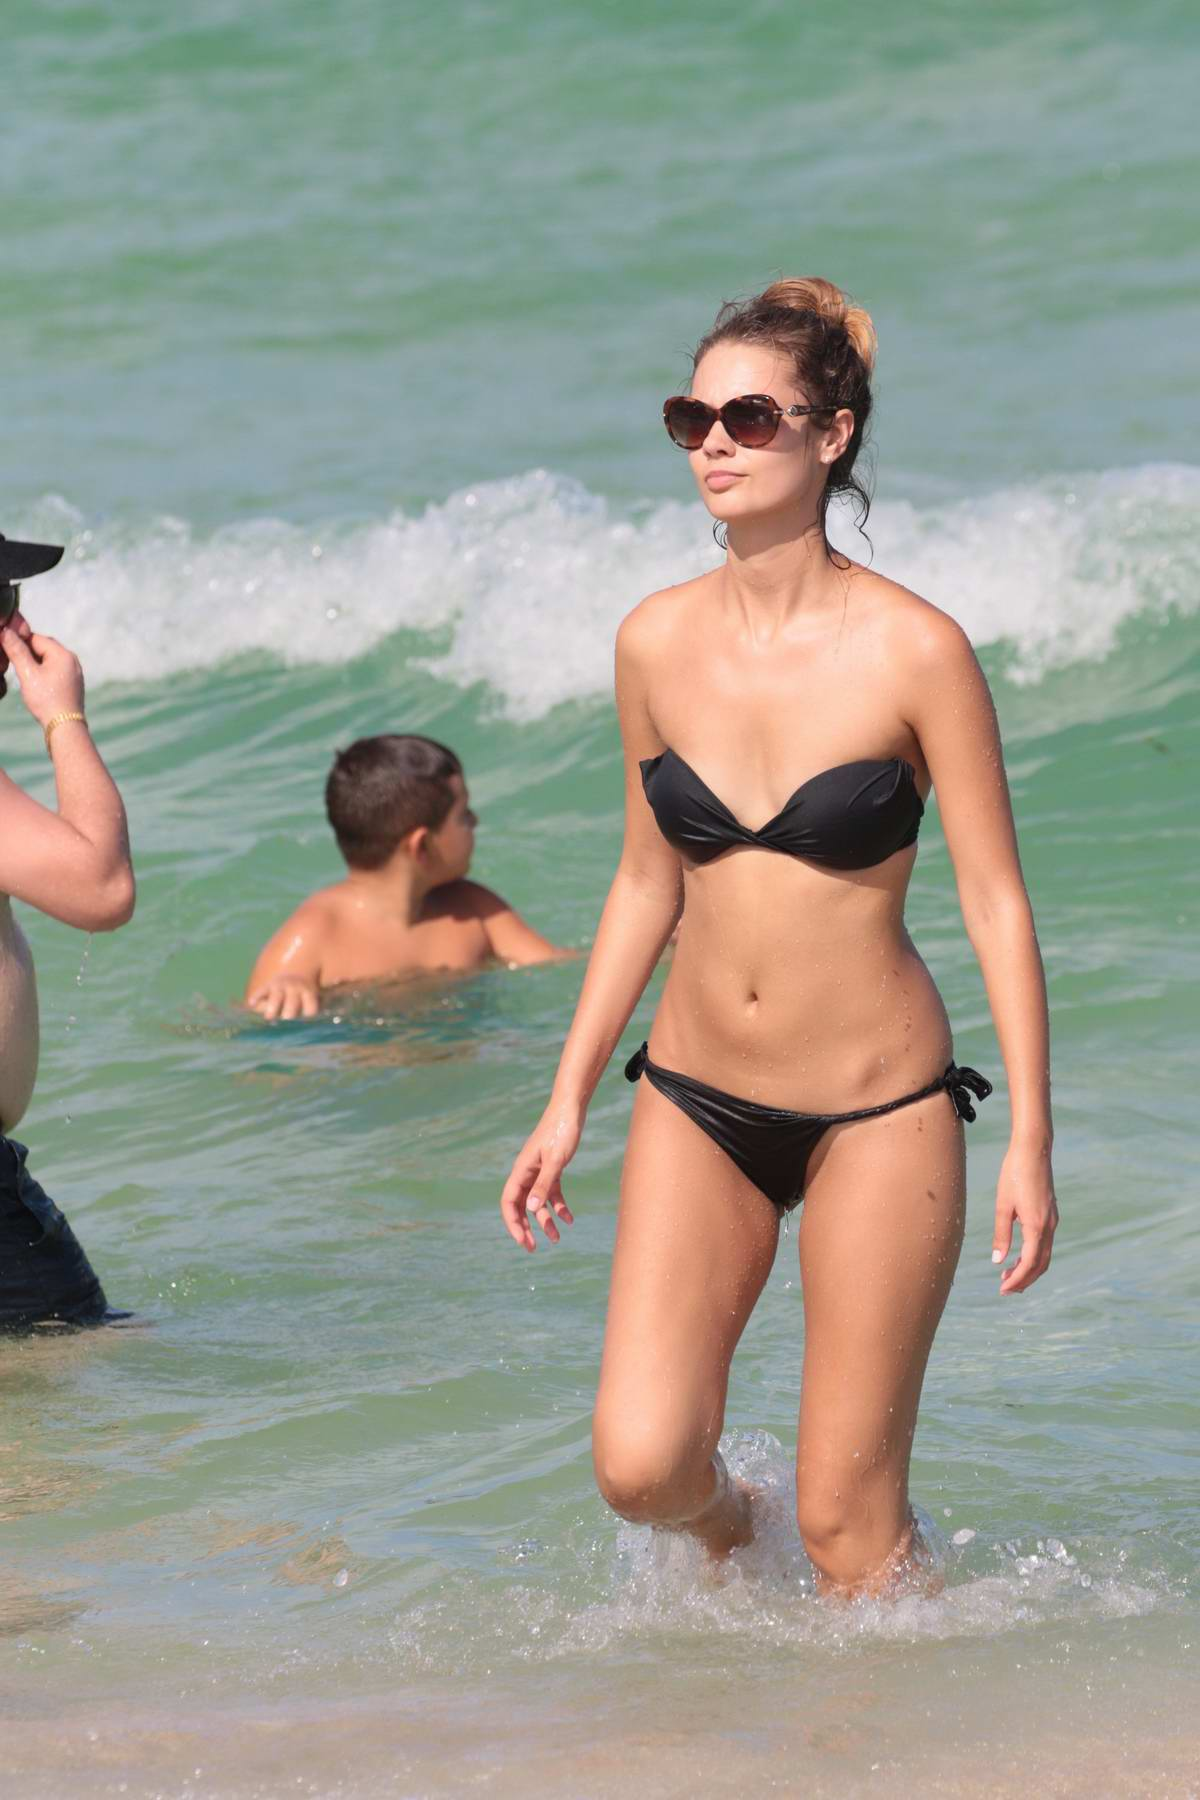 Yana Dubnik in a black bikini at the beach in Miami